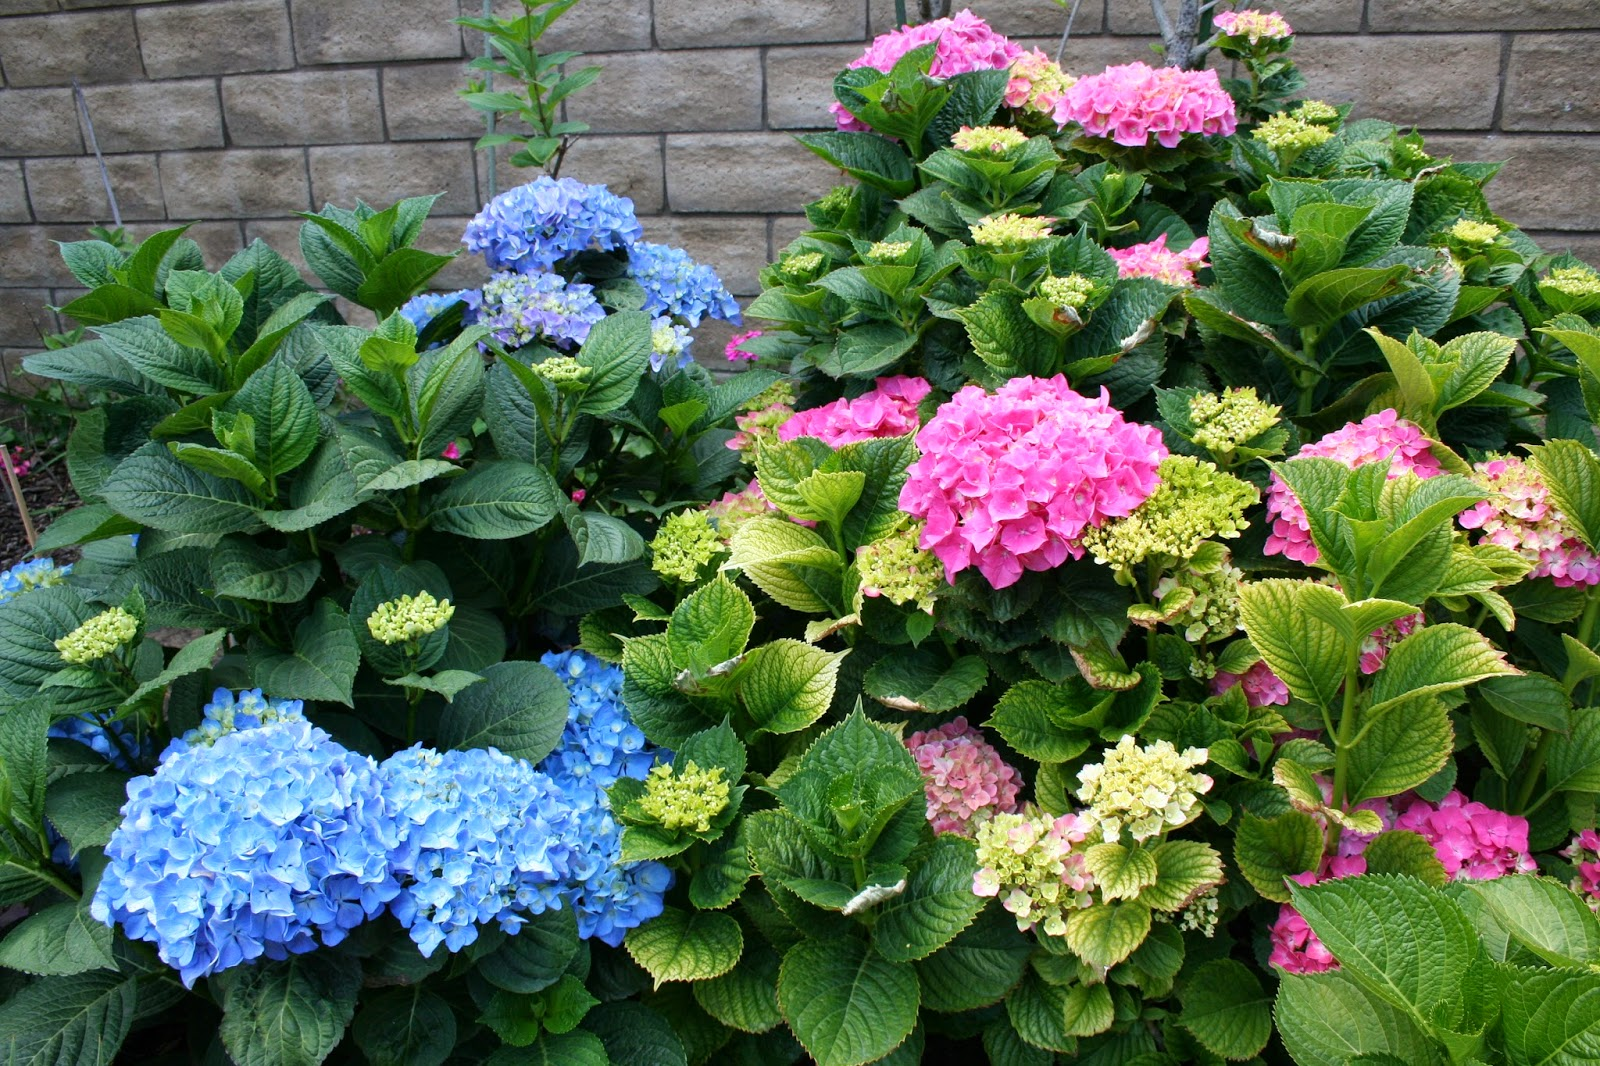 Also, Mixing Different Varieties, Lacecap And Mophead, Of Hydrangeas  (below) Provide An Interesting Effect In The Garden. Seems Like The Lacecap  Is More ...